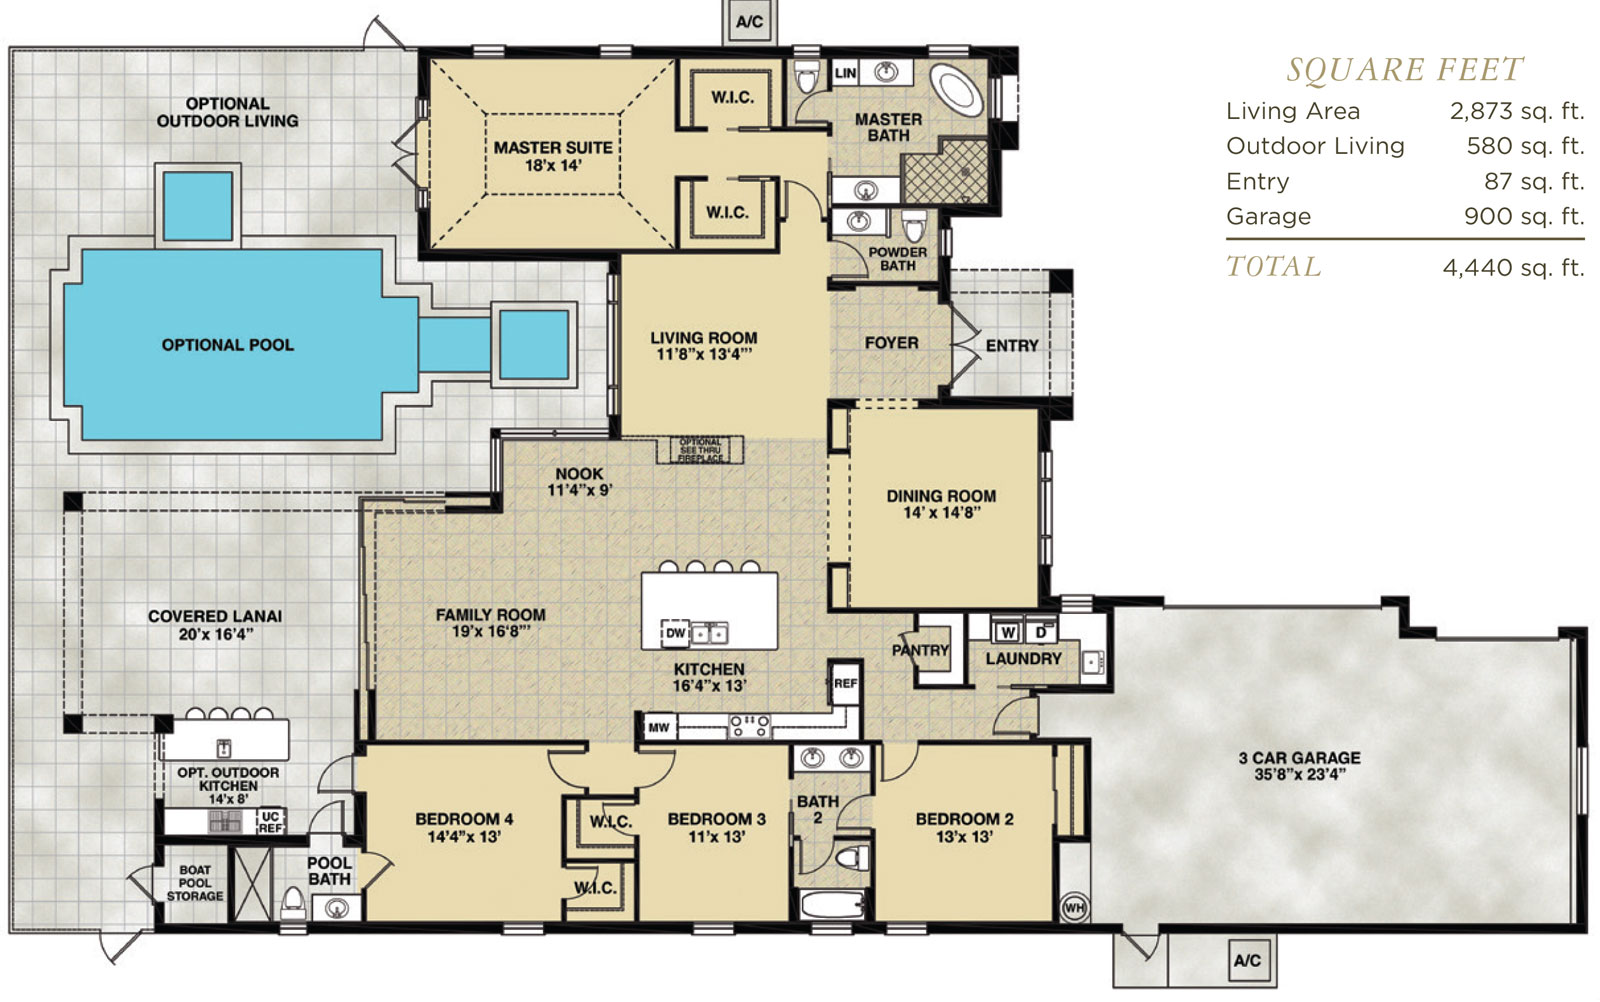 Swimming pool floor plan thefloors co for Fl home plans